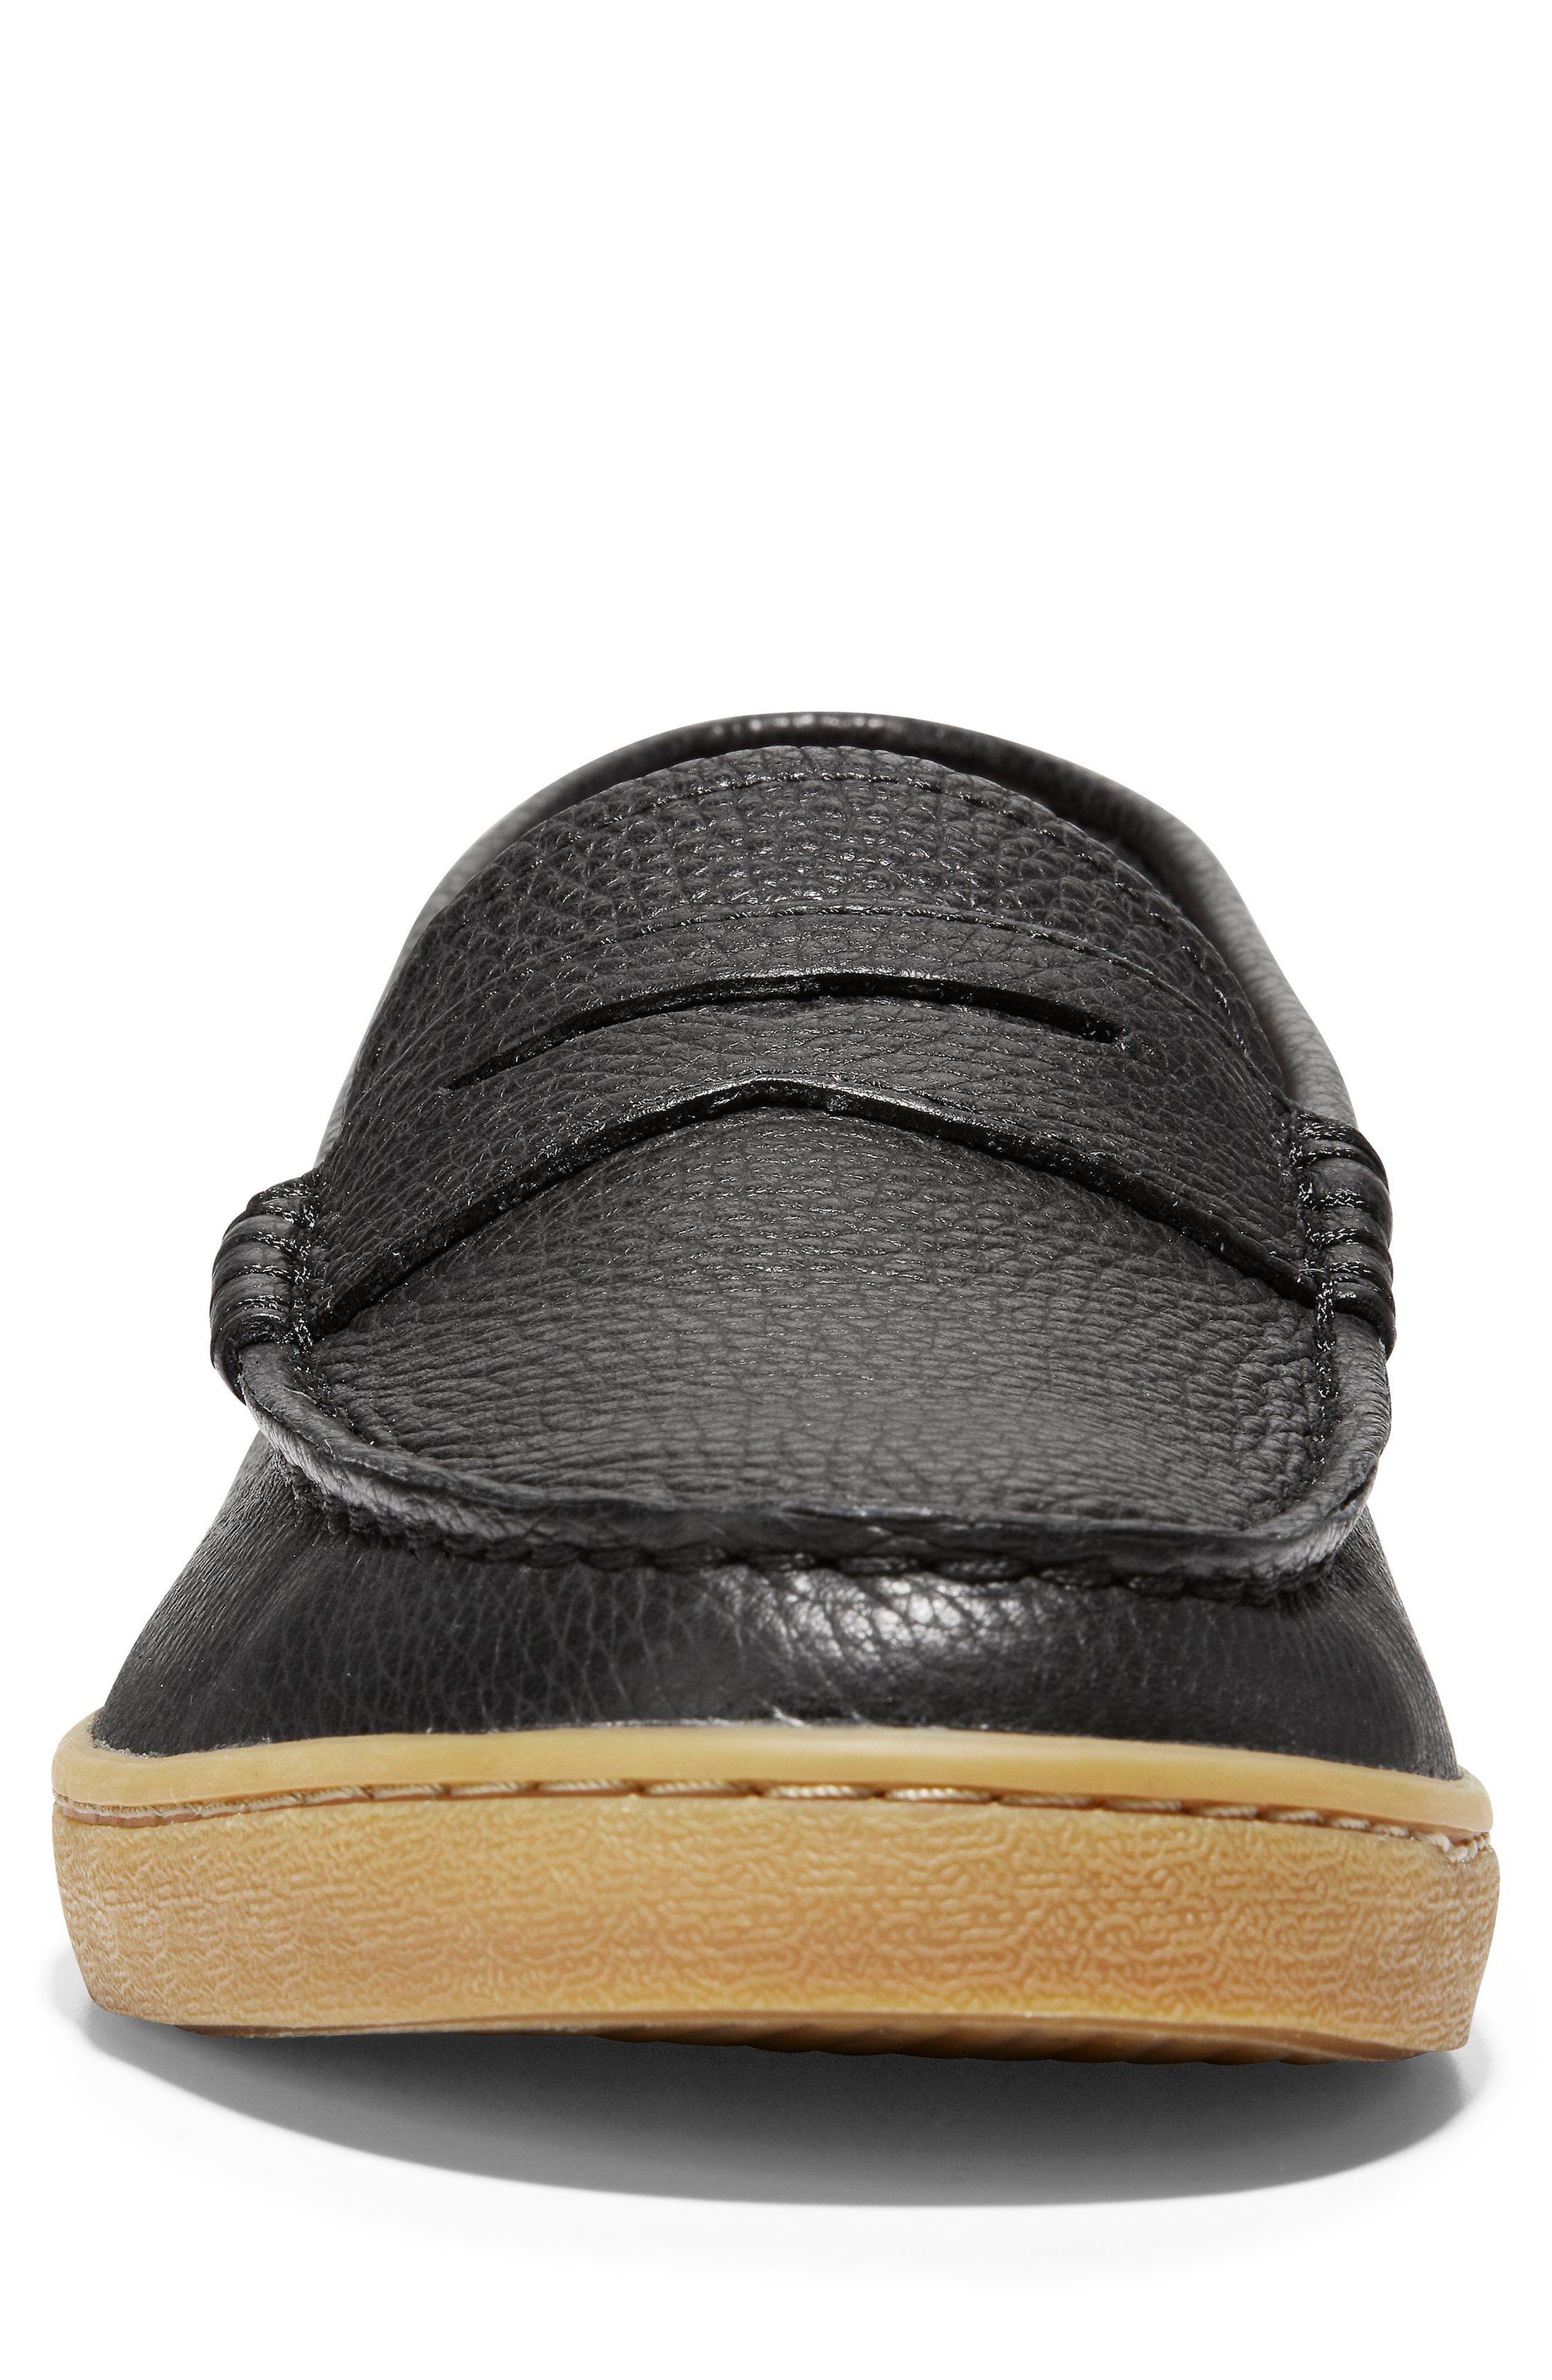 'Pinch Weekend' Penny Loafer,                             Alternate thumbnail 5, color,                             Black Tumble Leather